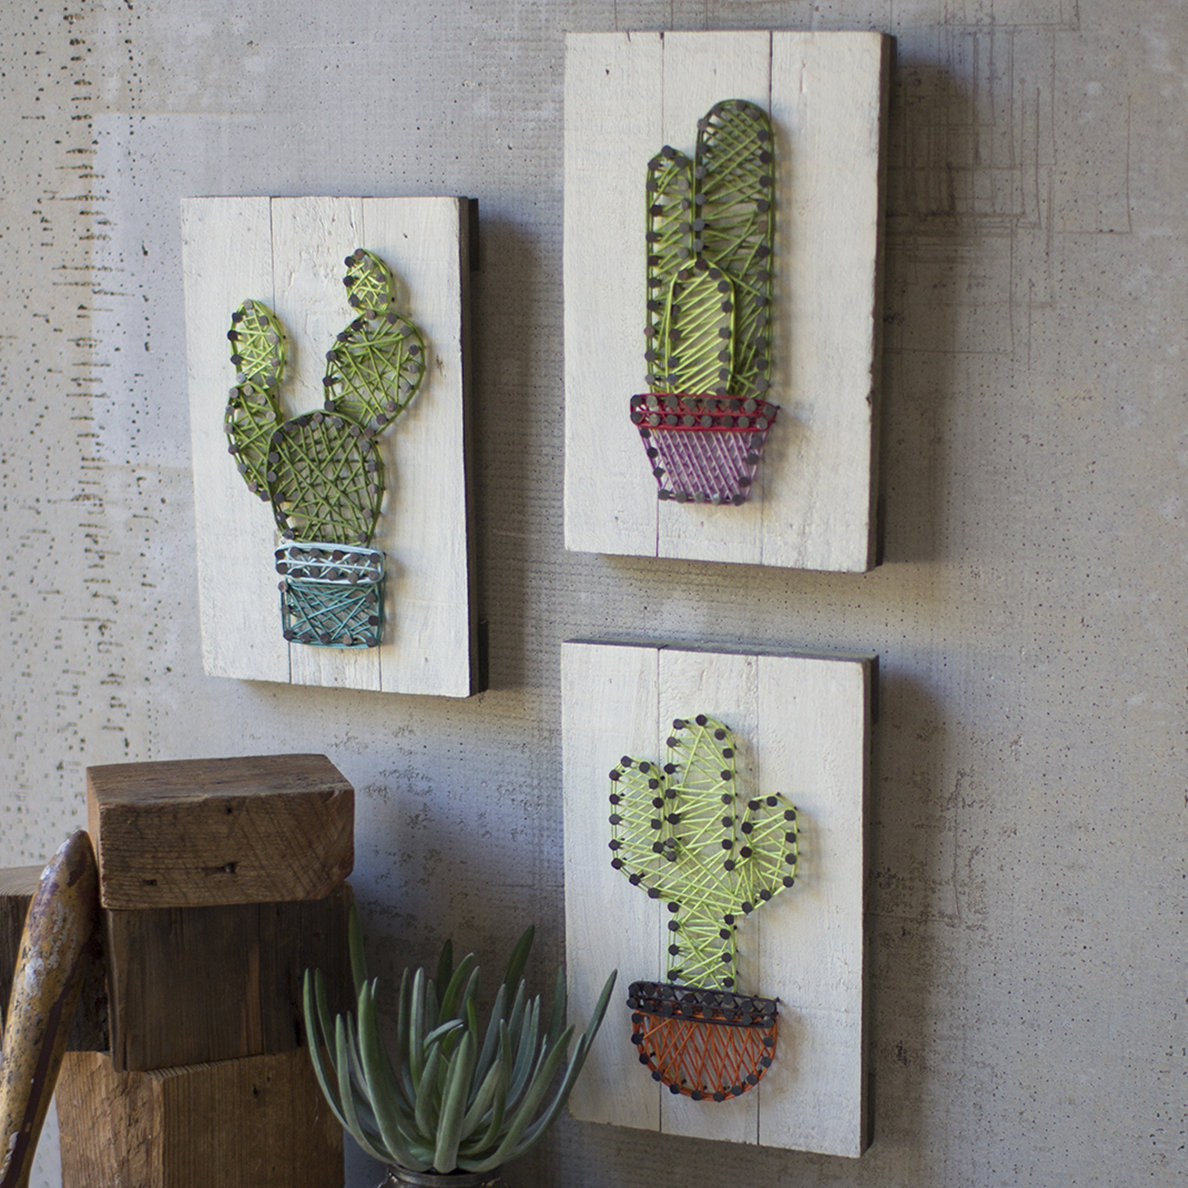 3 Piece Ceramic Flowers Wall Decor Sets In Most Recent 3 Piece Cactus String Art On Wooden Plaques Wall Décor Set (Gallery 14 of 20)